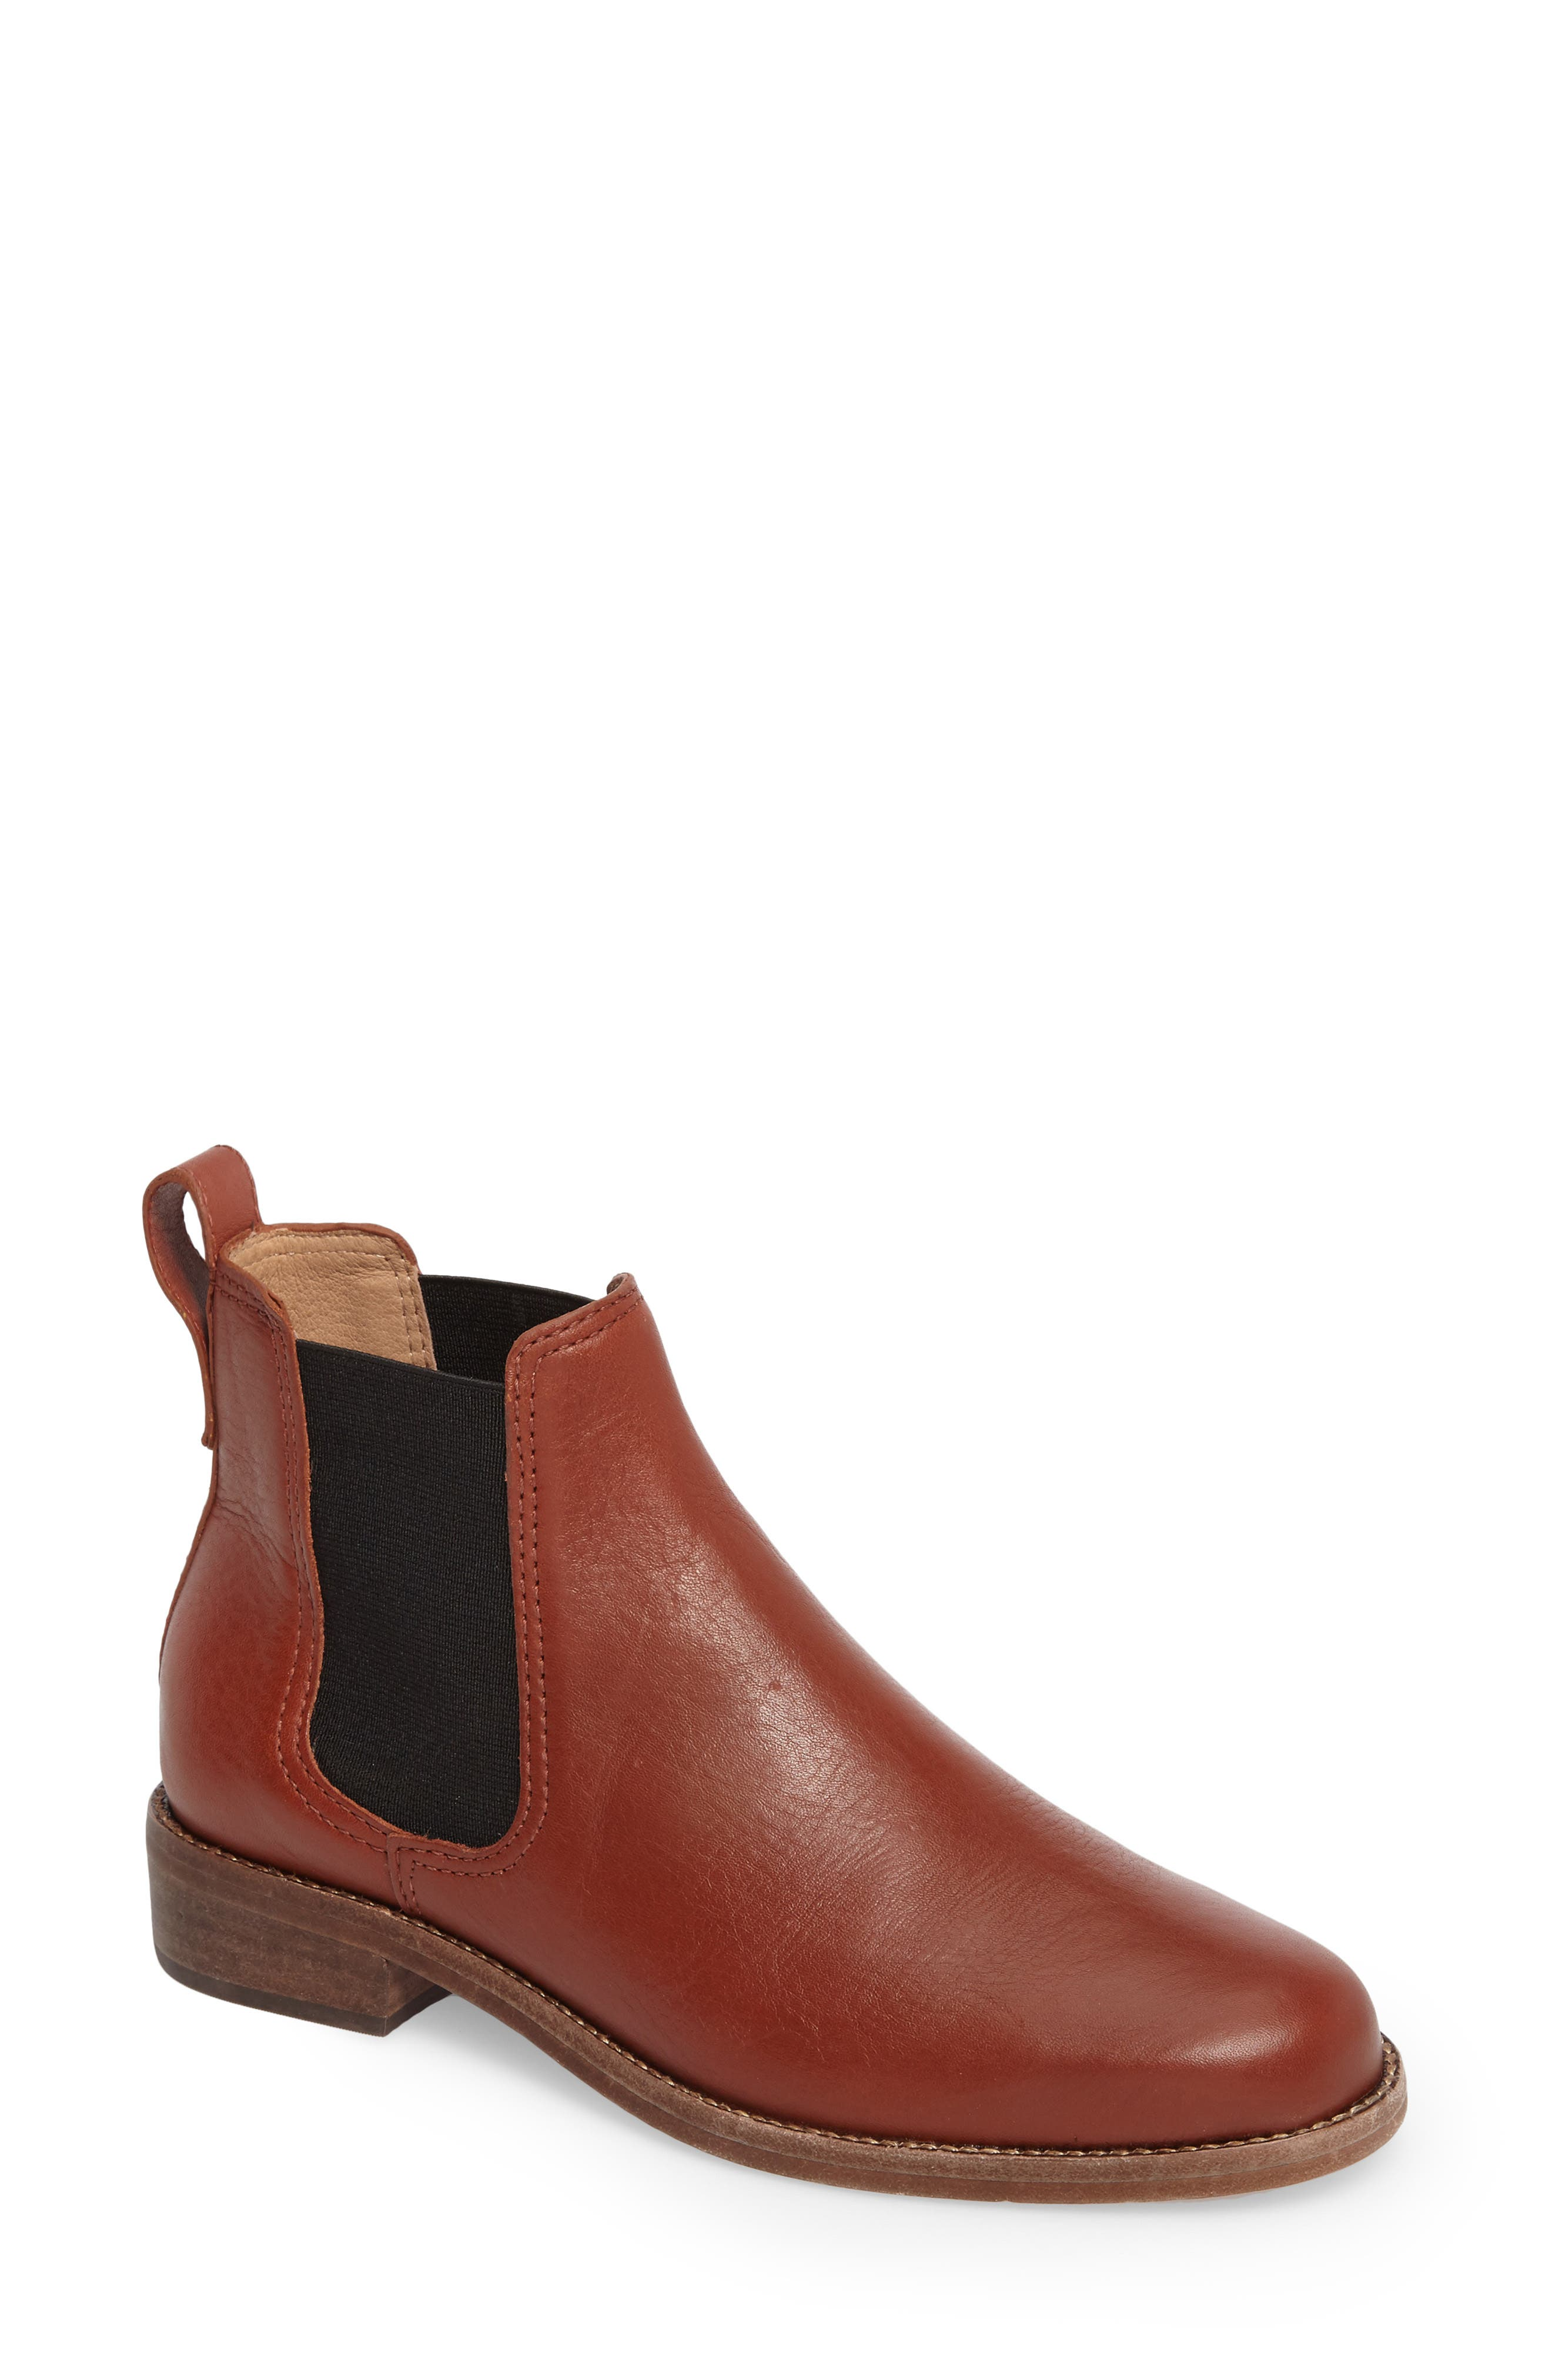 Alternate Image 1 Selected - Madewell Ainsley Chelsea Boot (Women)